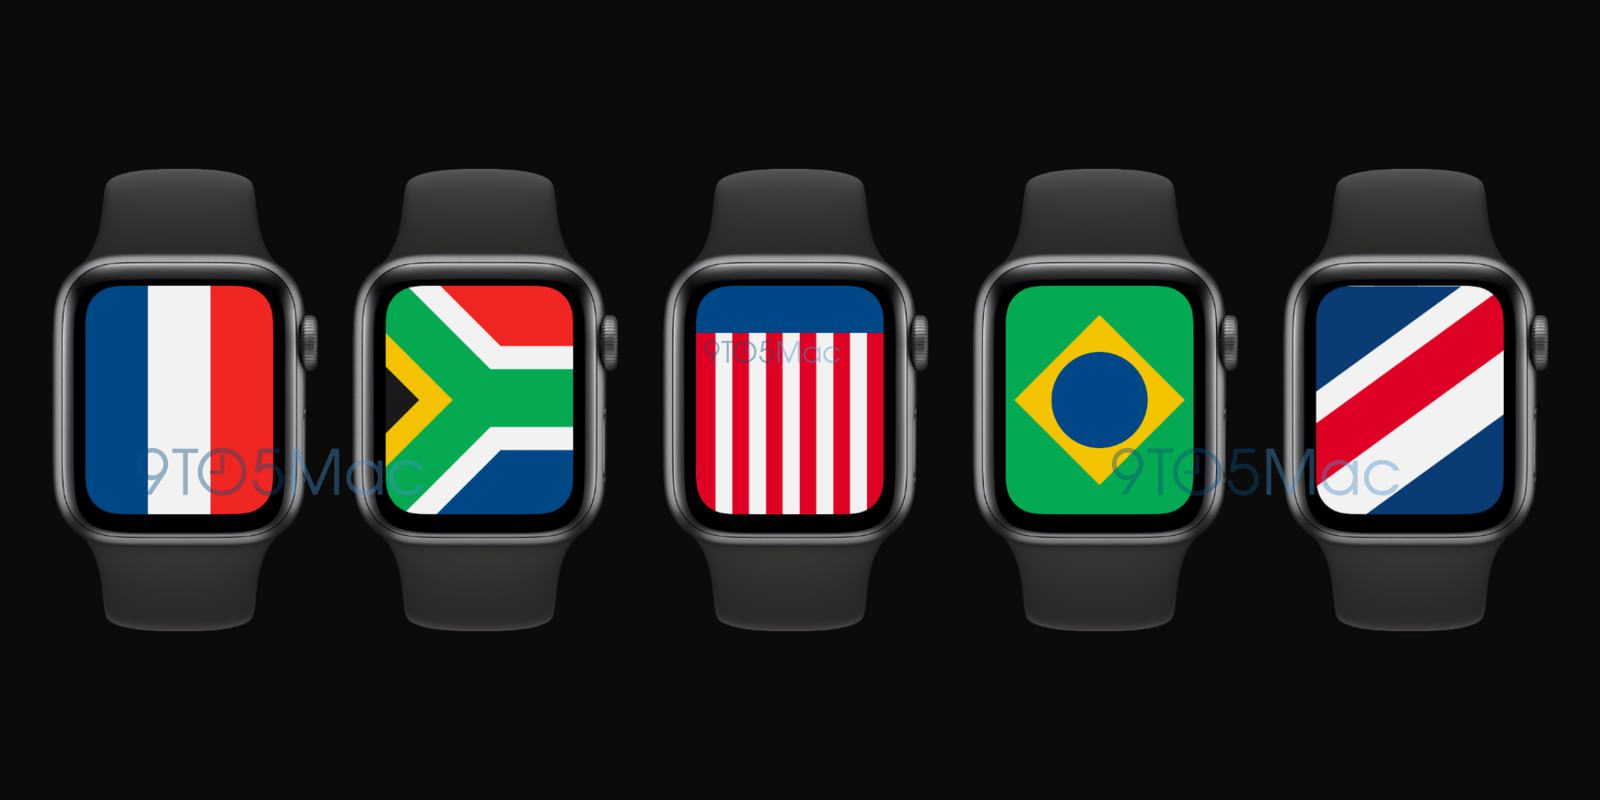 WatchOS 7 International watch face